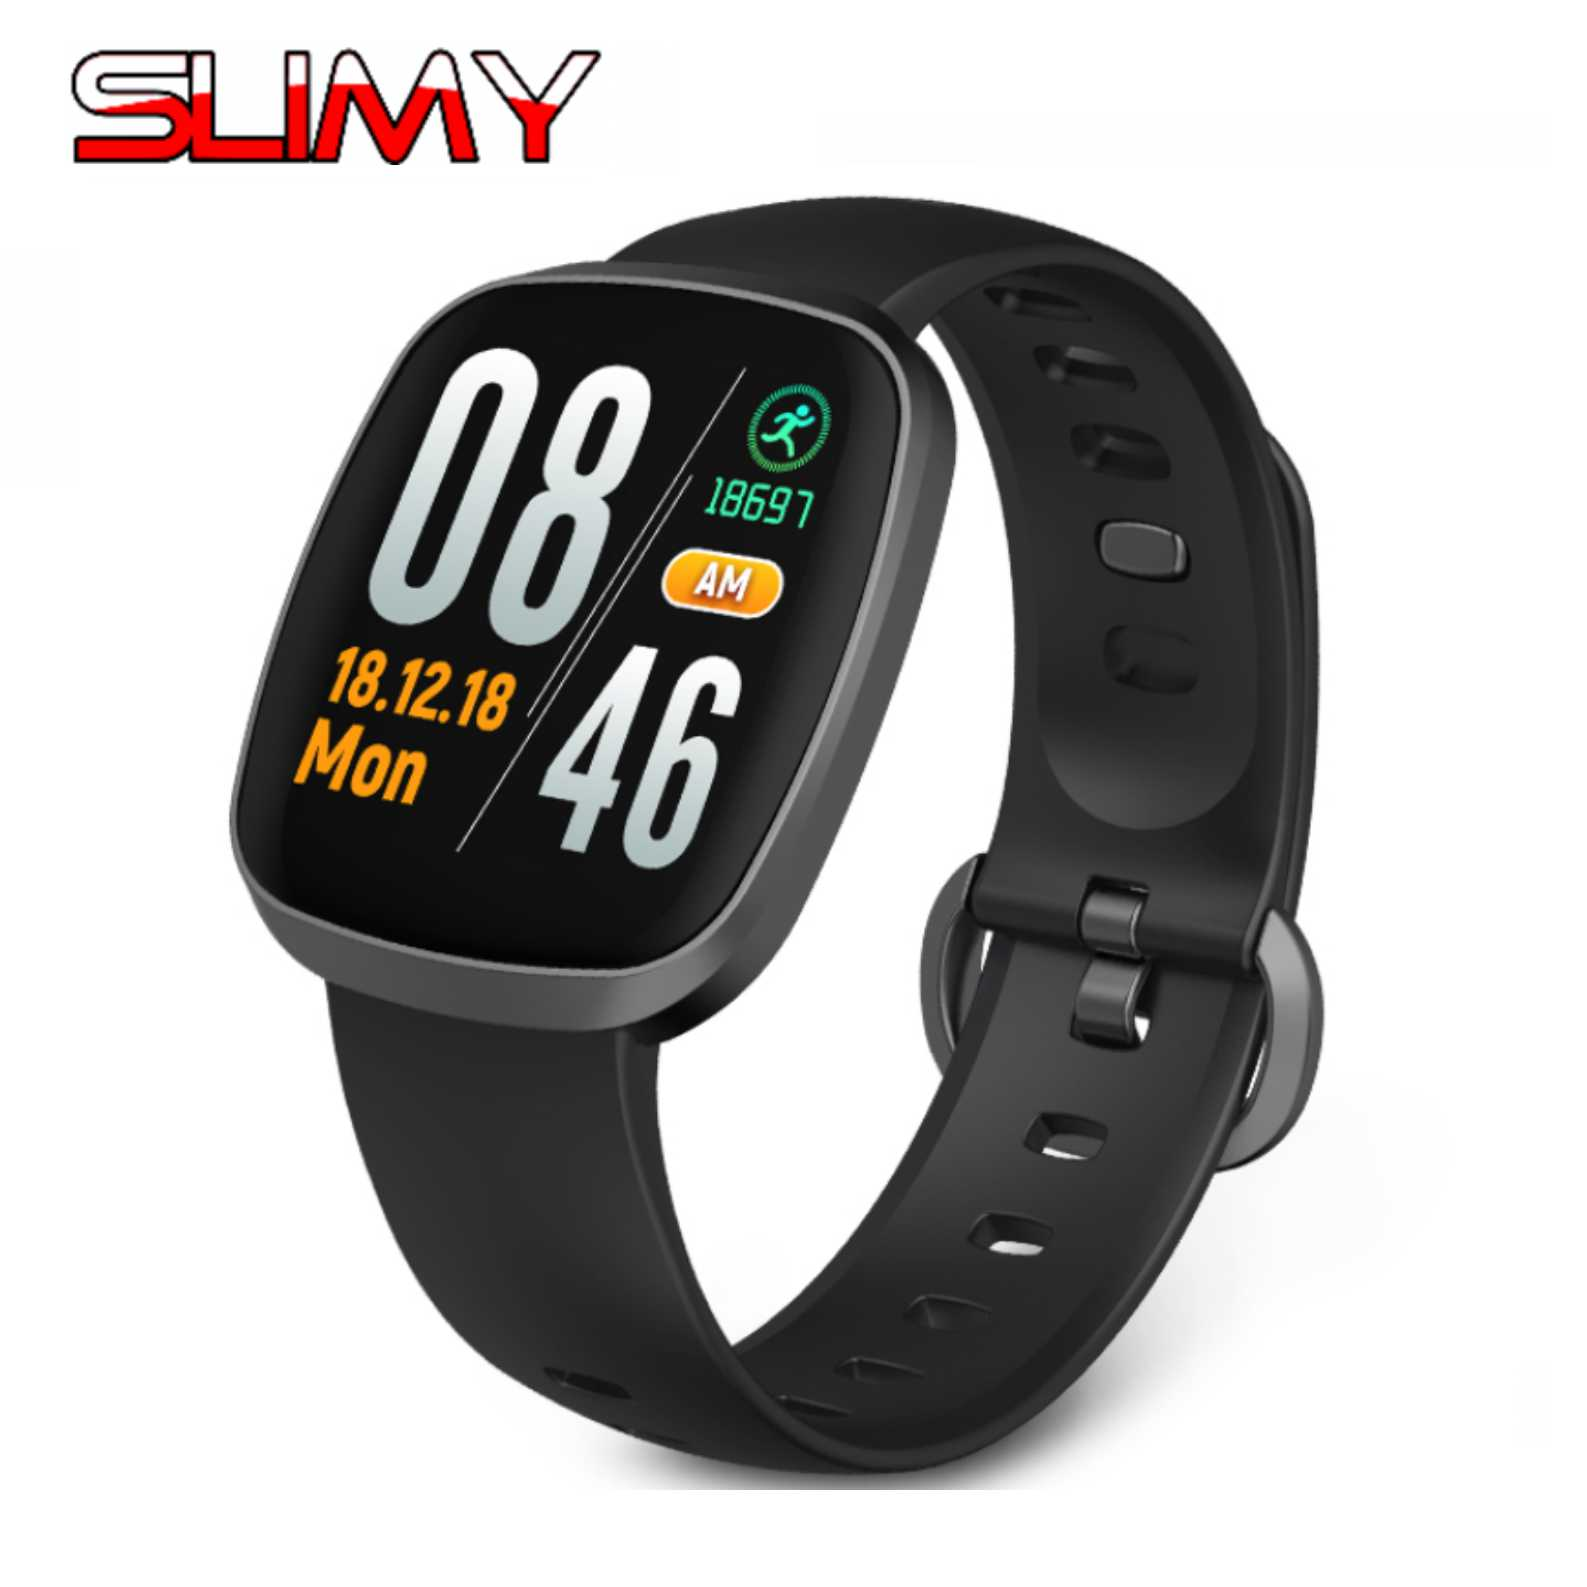 Radient Slimy Gt103 Smart Watch 1.3 Ips Color Touch Lcd 2.5d Curved Screen Fitness Tracker Sports Smartwatch Heart Rate Monitor Smart Electronics